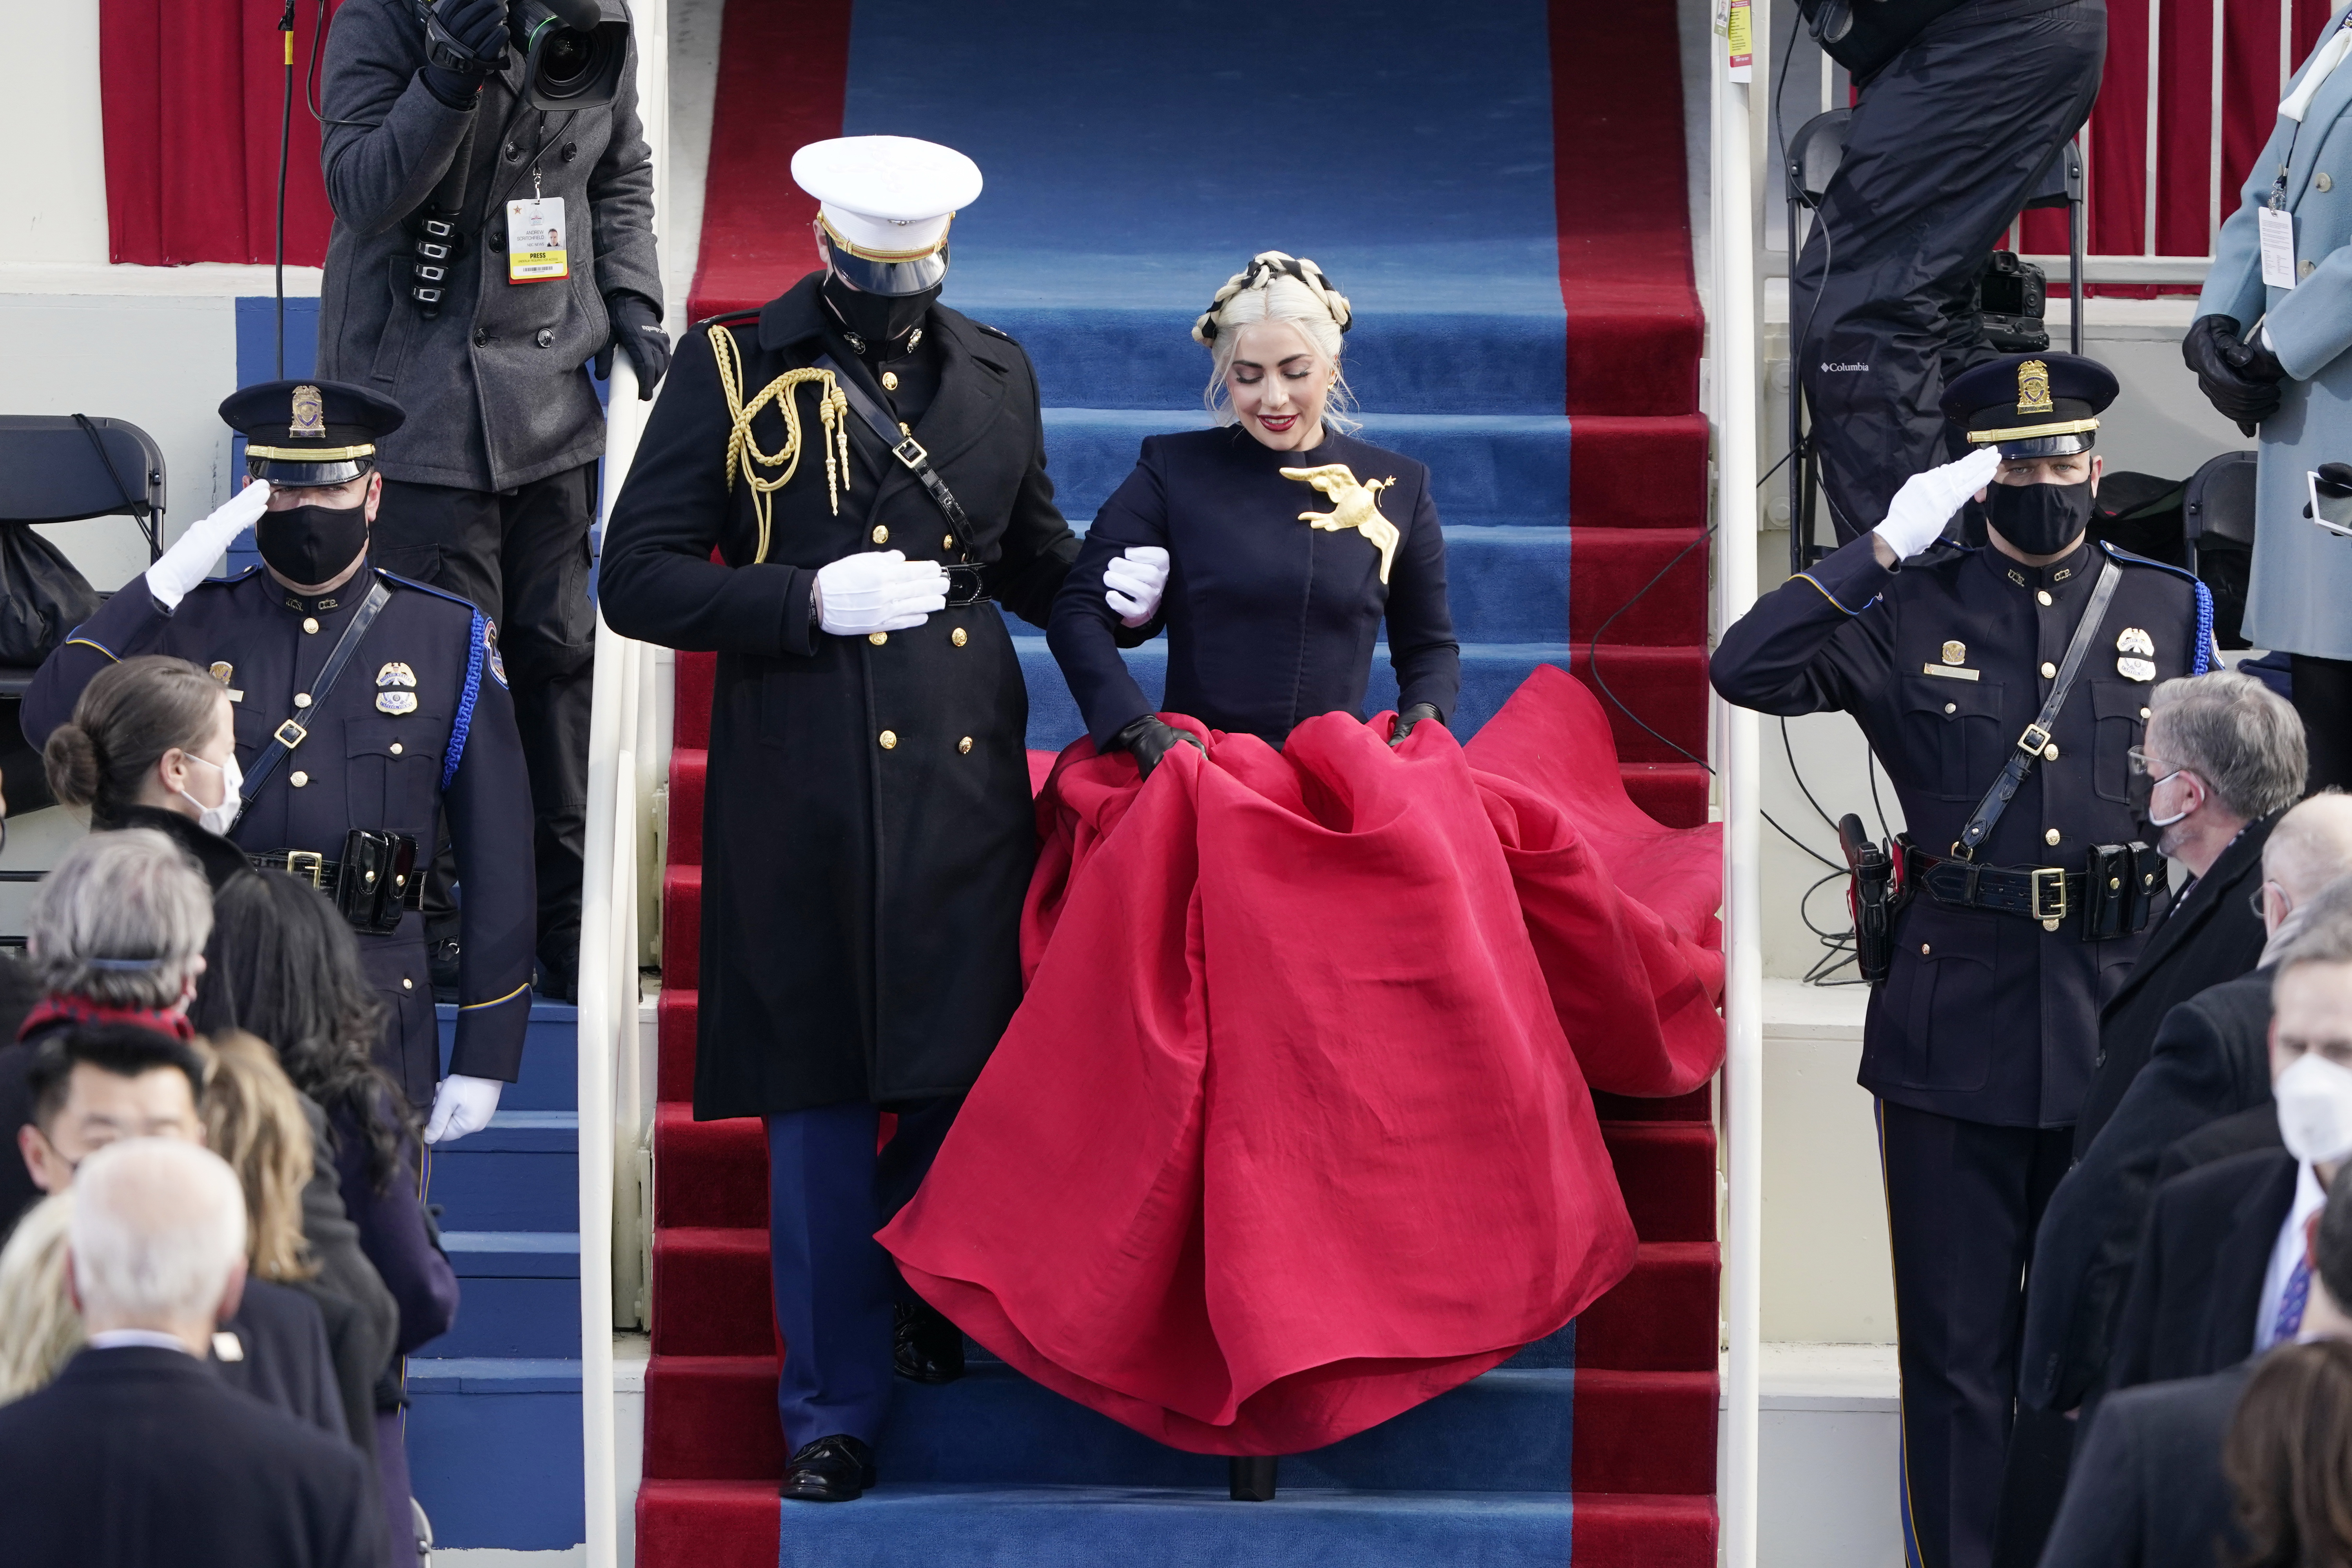 Lady Gaga arrives to sing the National Anthem during the 59th Presidential Inauguration at the U.S. Capitol in Washington, Wednesday, Jan. 20, 2021. (AP Photo/Patrick Semansky, Pool)